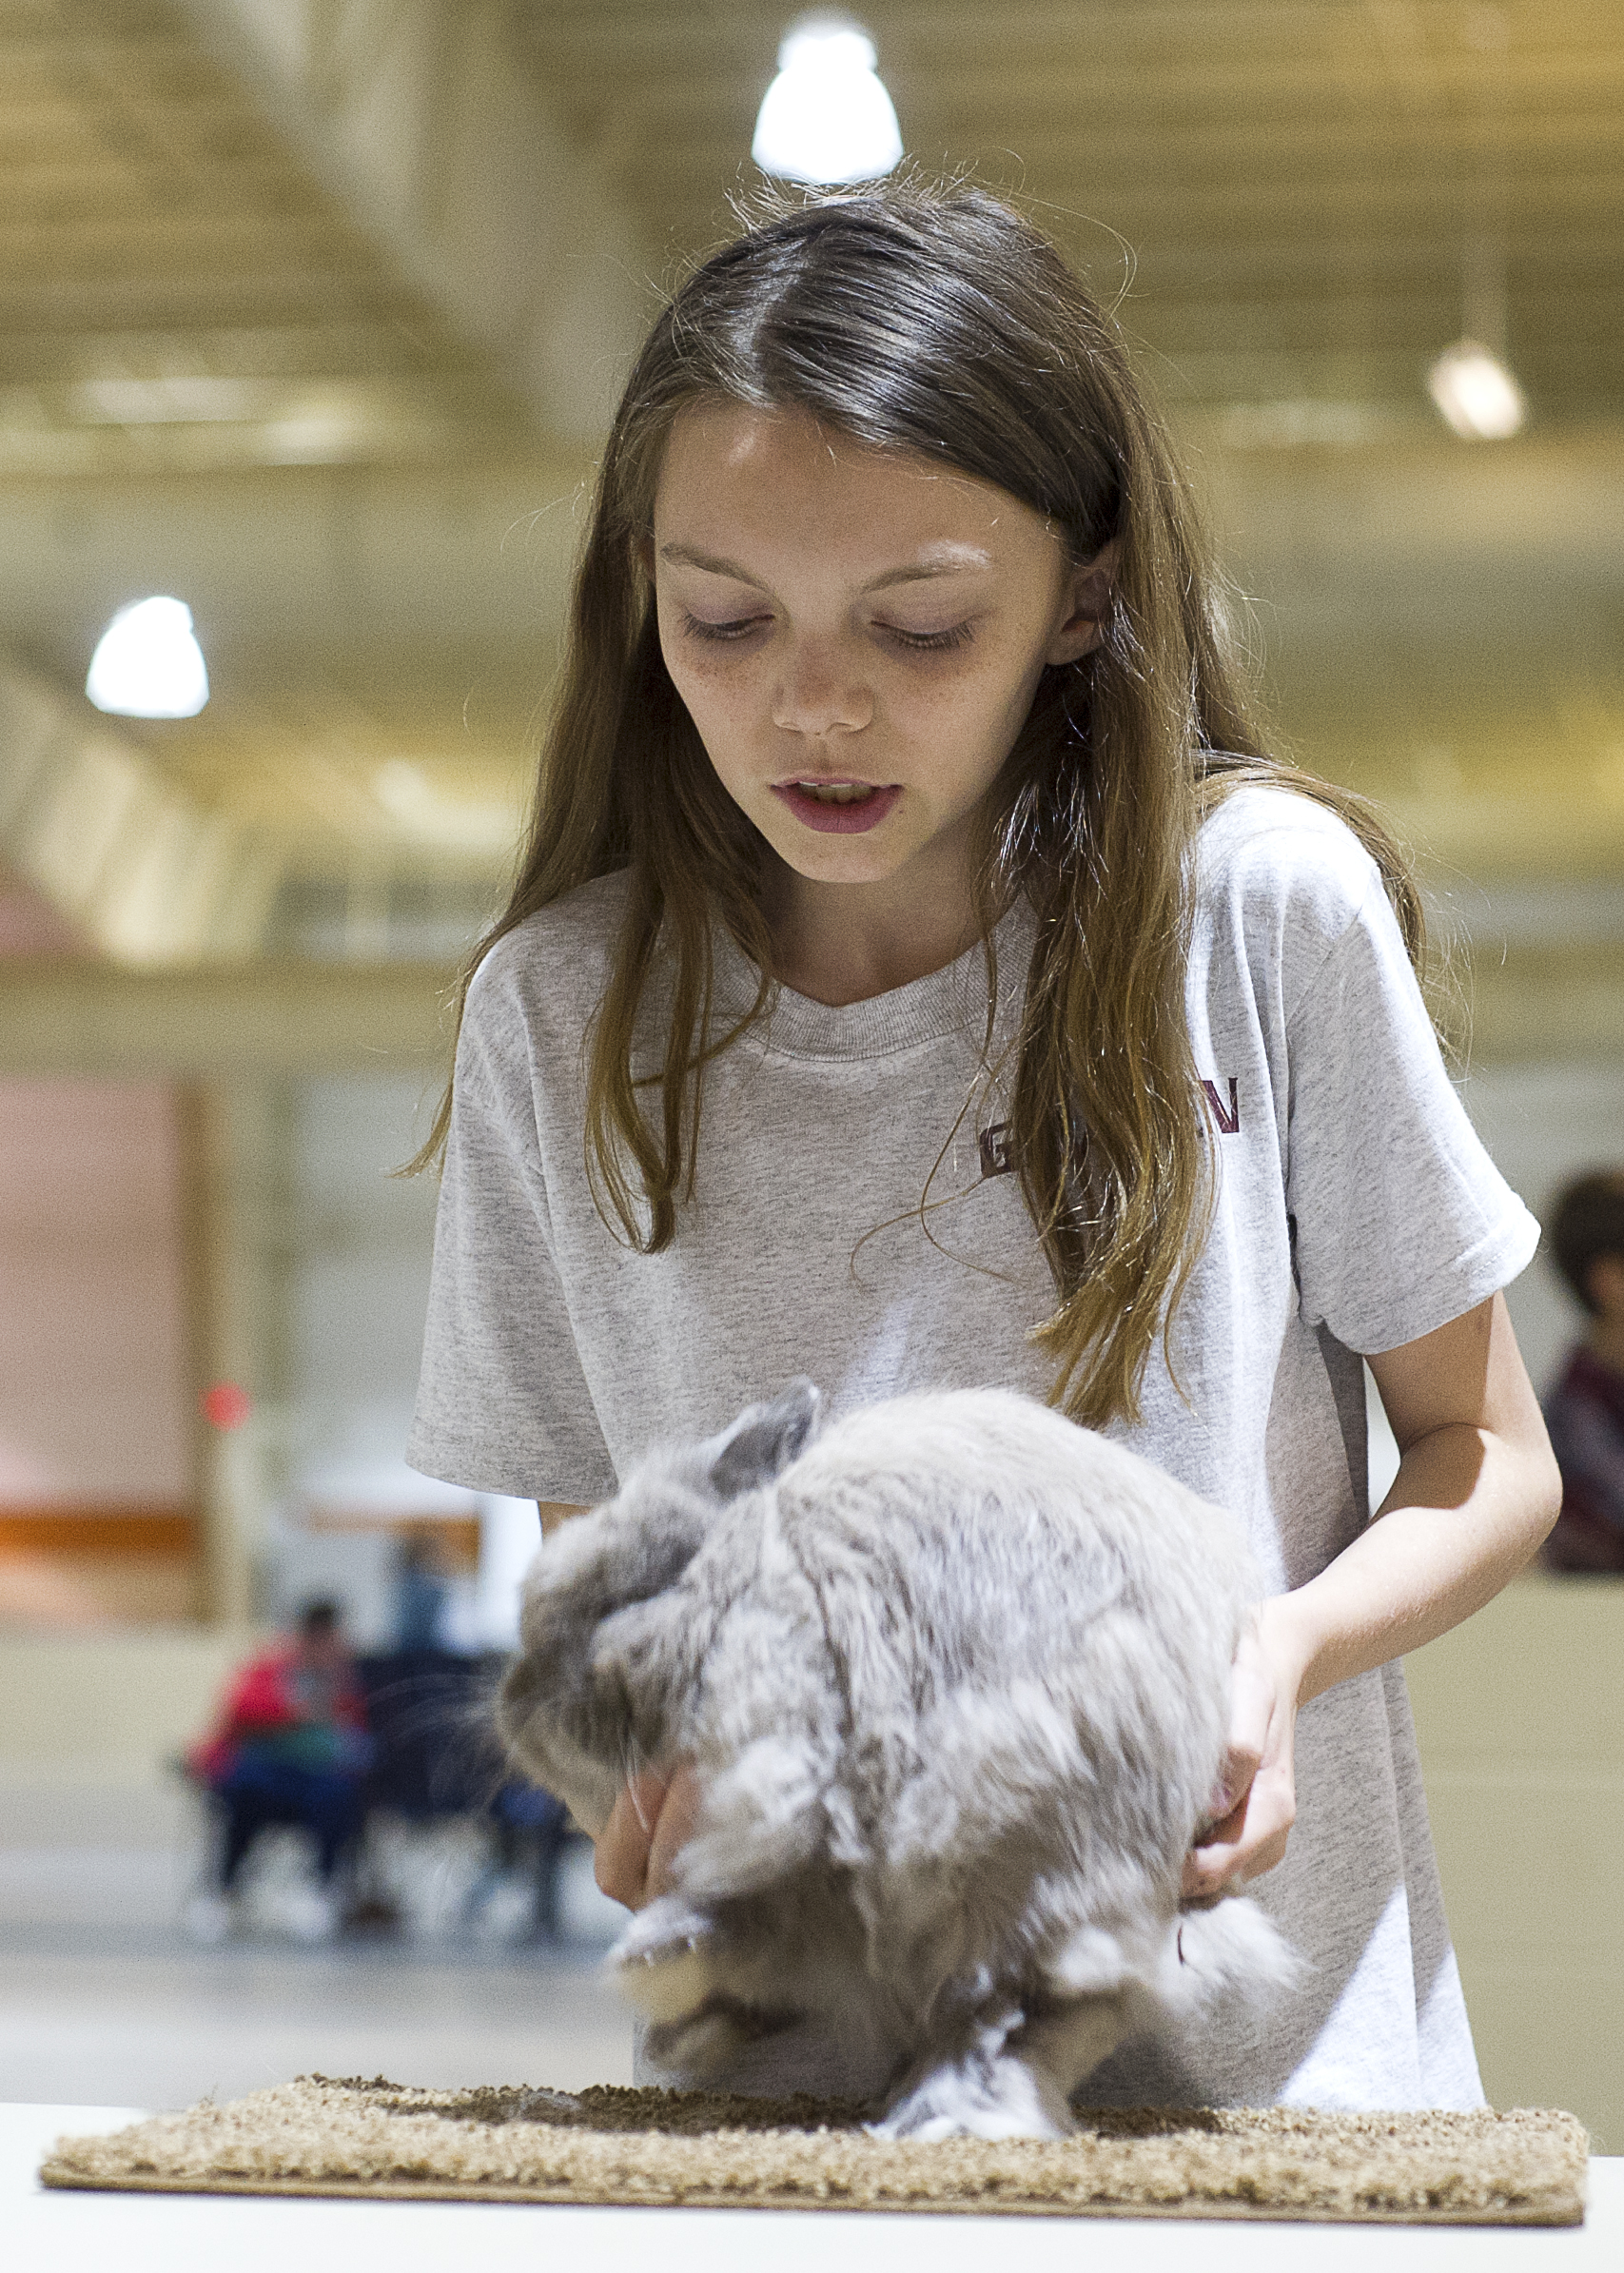 LSU AgCenter rabbit show winners announced